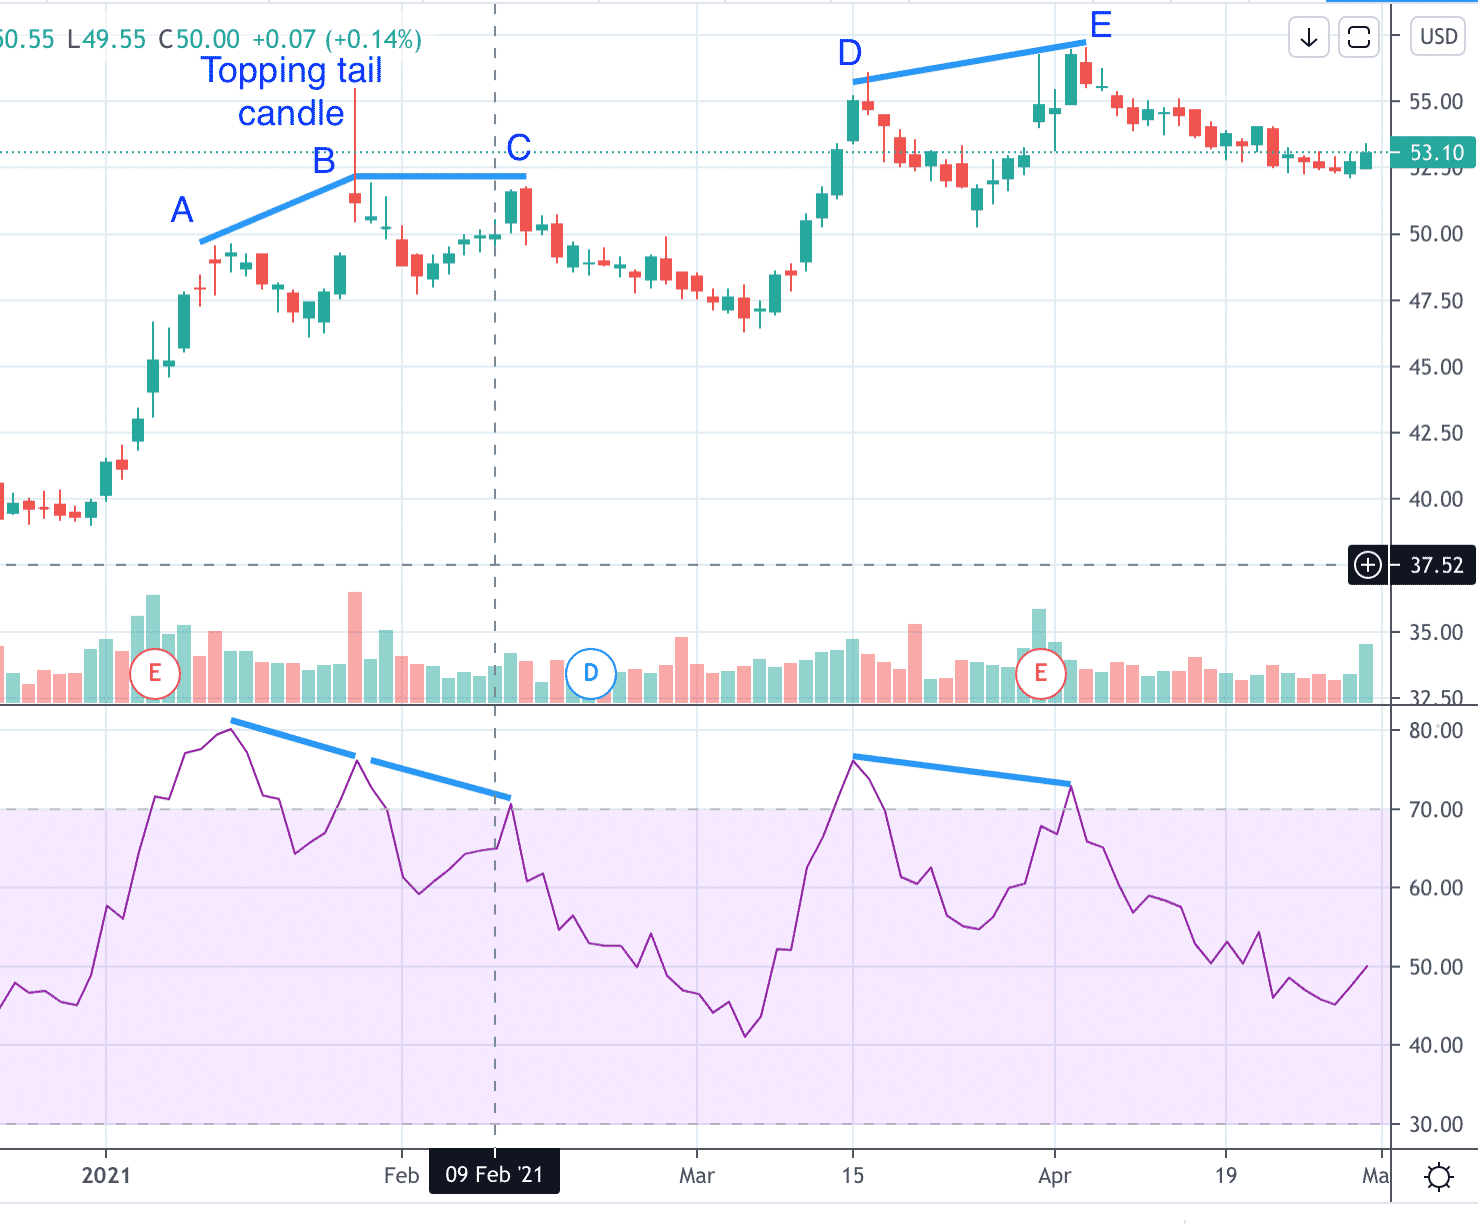 does the rsi divergence really work?